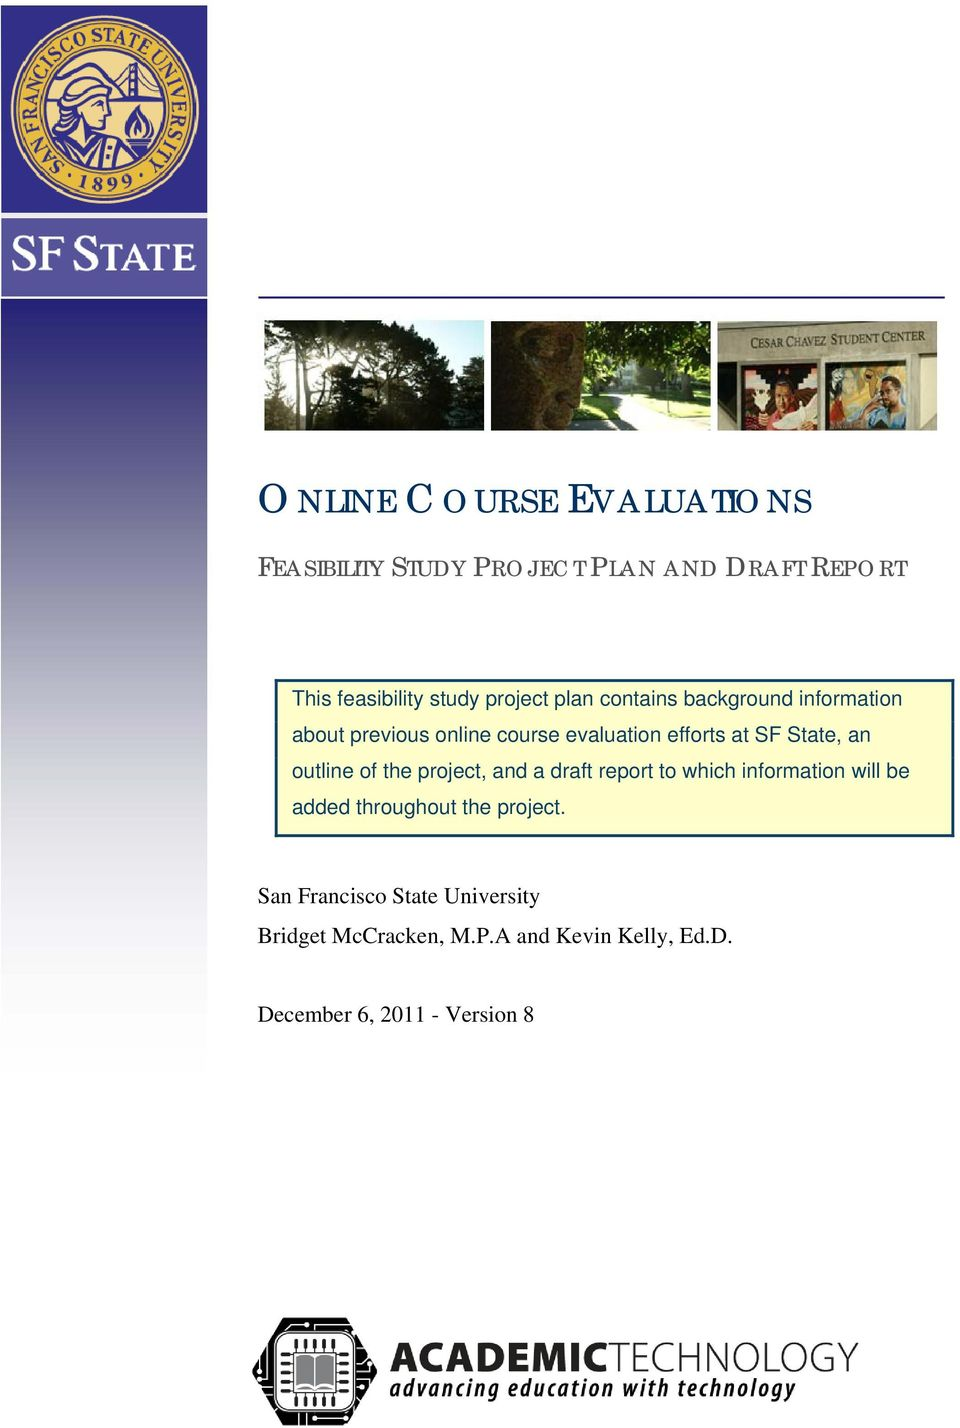 State, an outline of the project, and a draft report to which information will be added throughout the